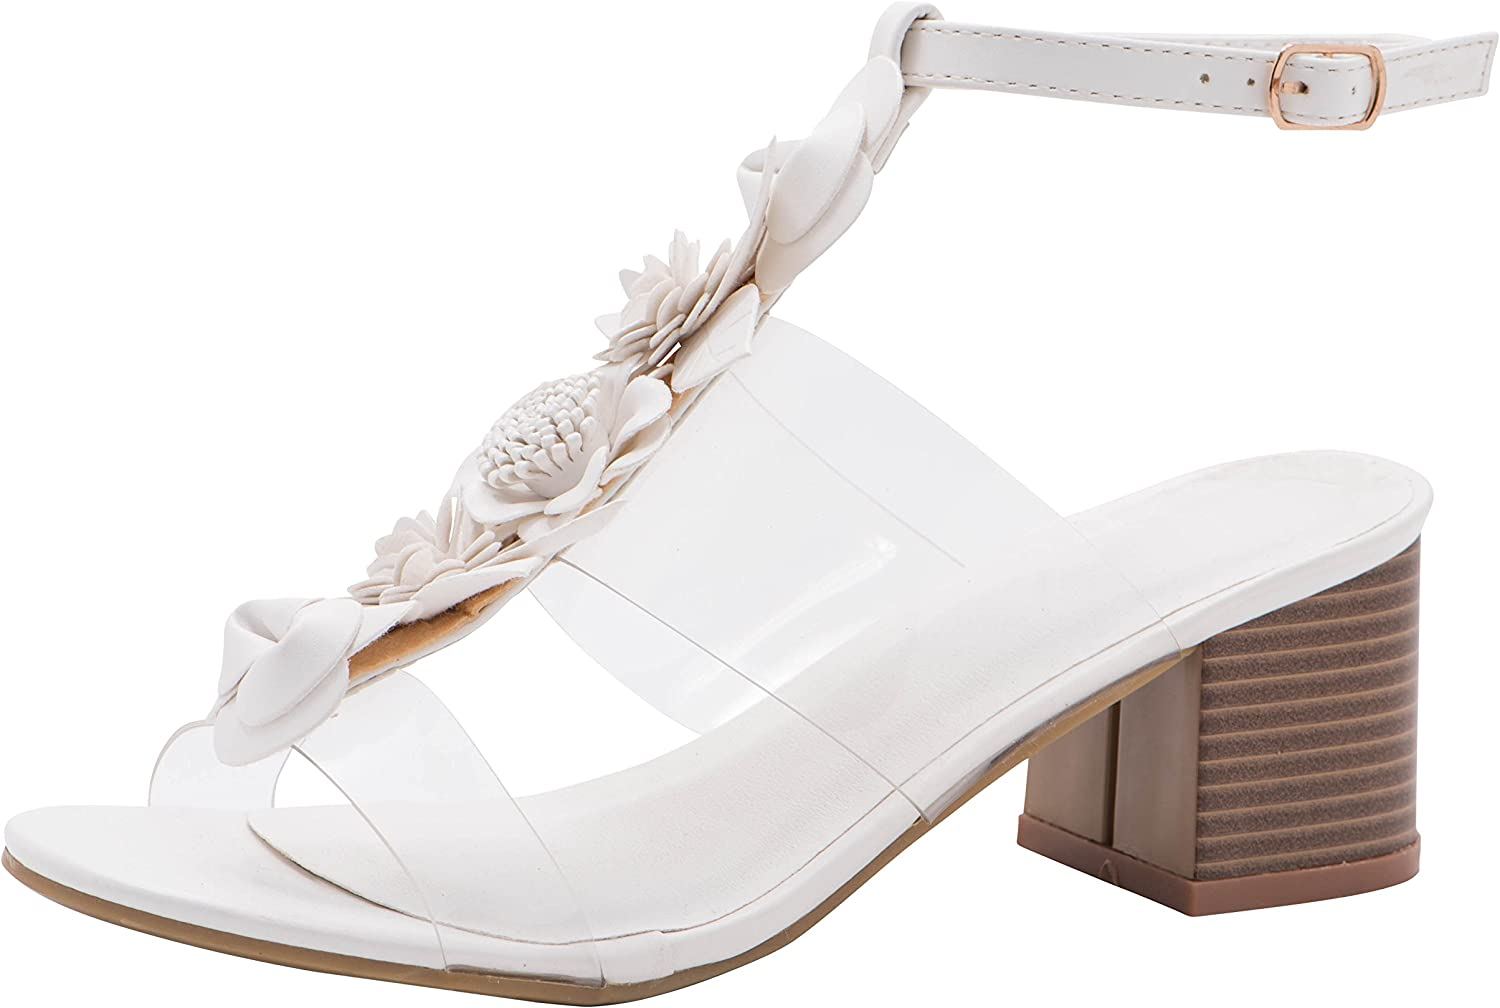 Cambridge Select Women's T-Strap Clear See Through Flower Mixed Media Chunky Stacked Block Heel Open Toe Sandal